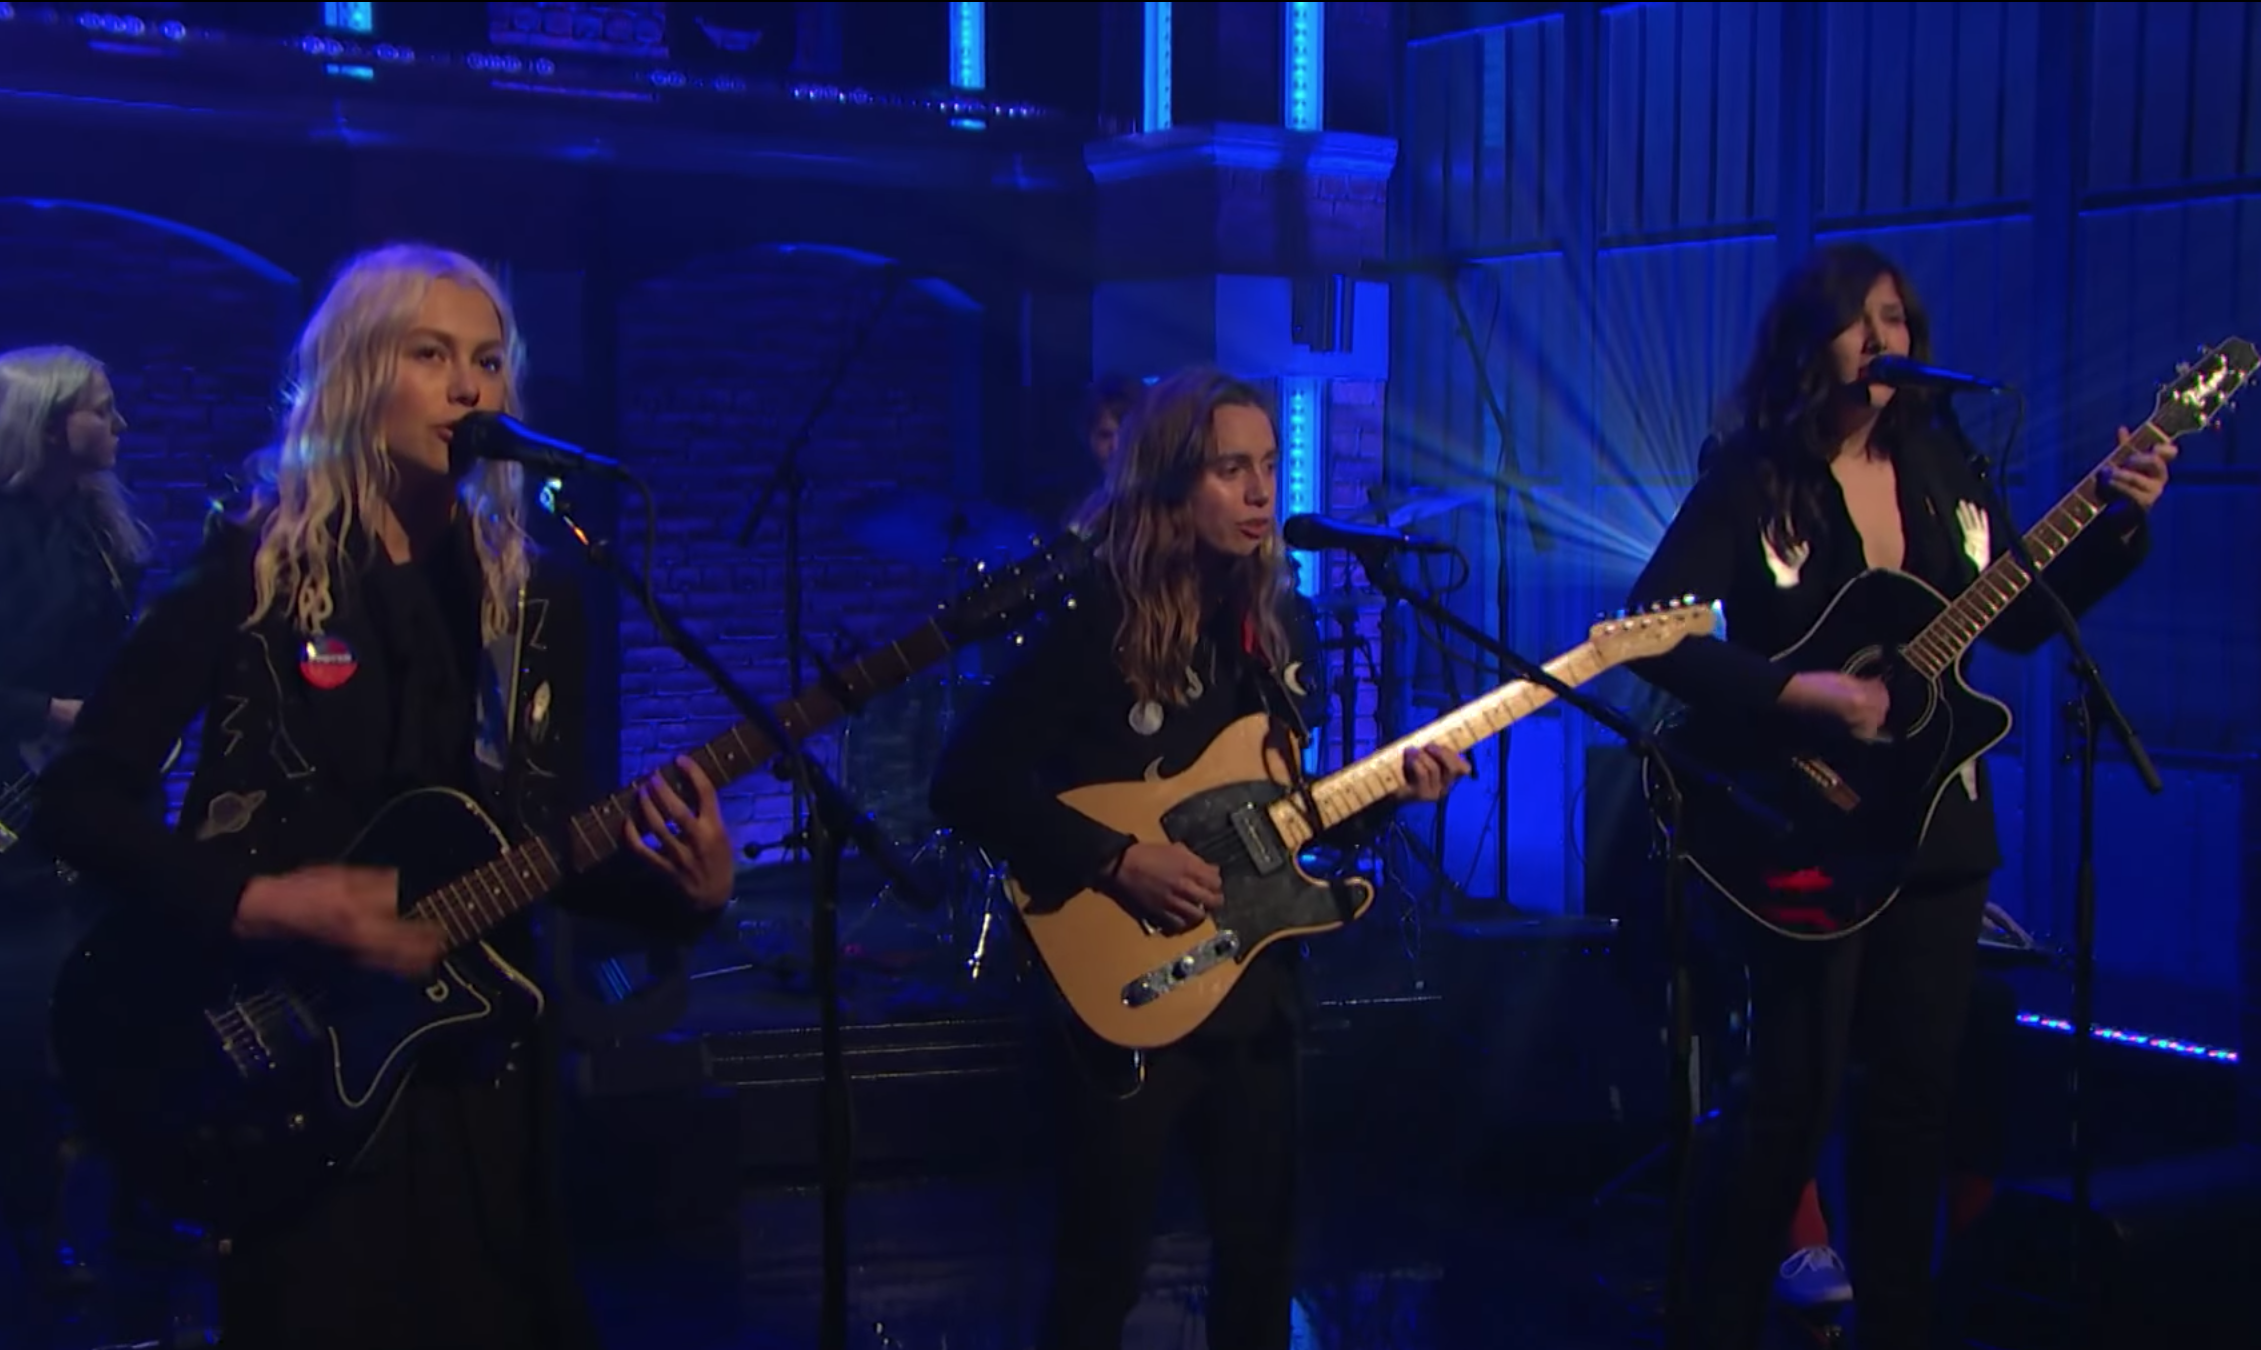 boygenius make their tv debut with 'Me & My Dog' on Seth Meyers